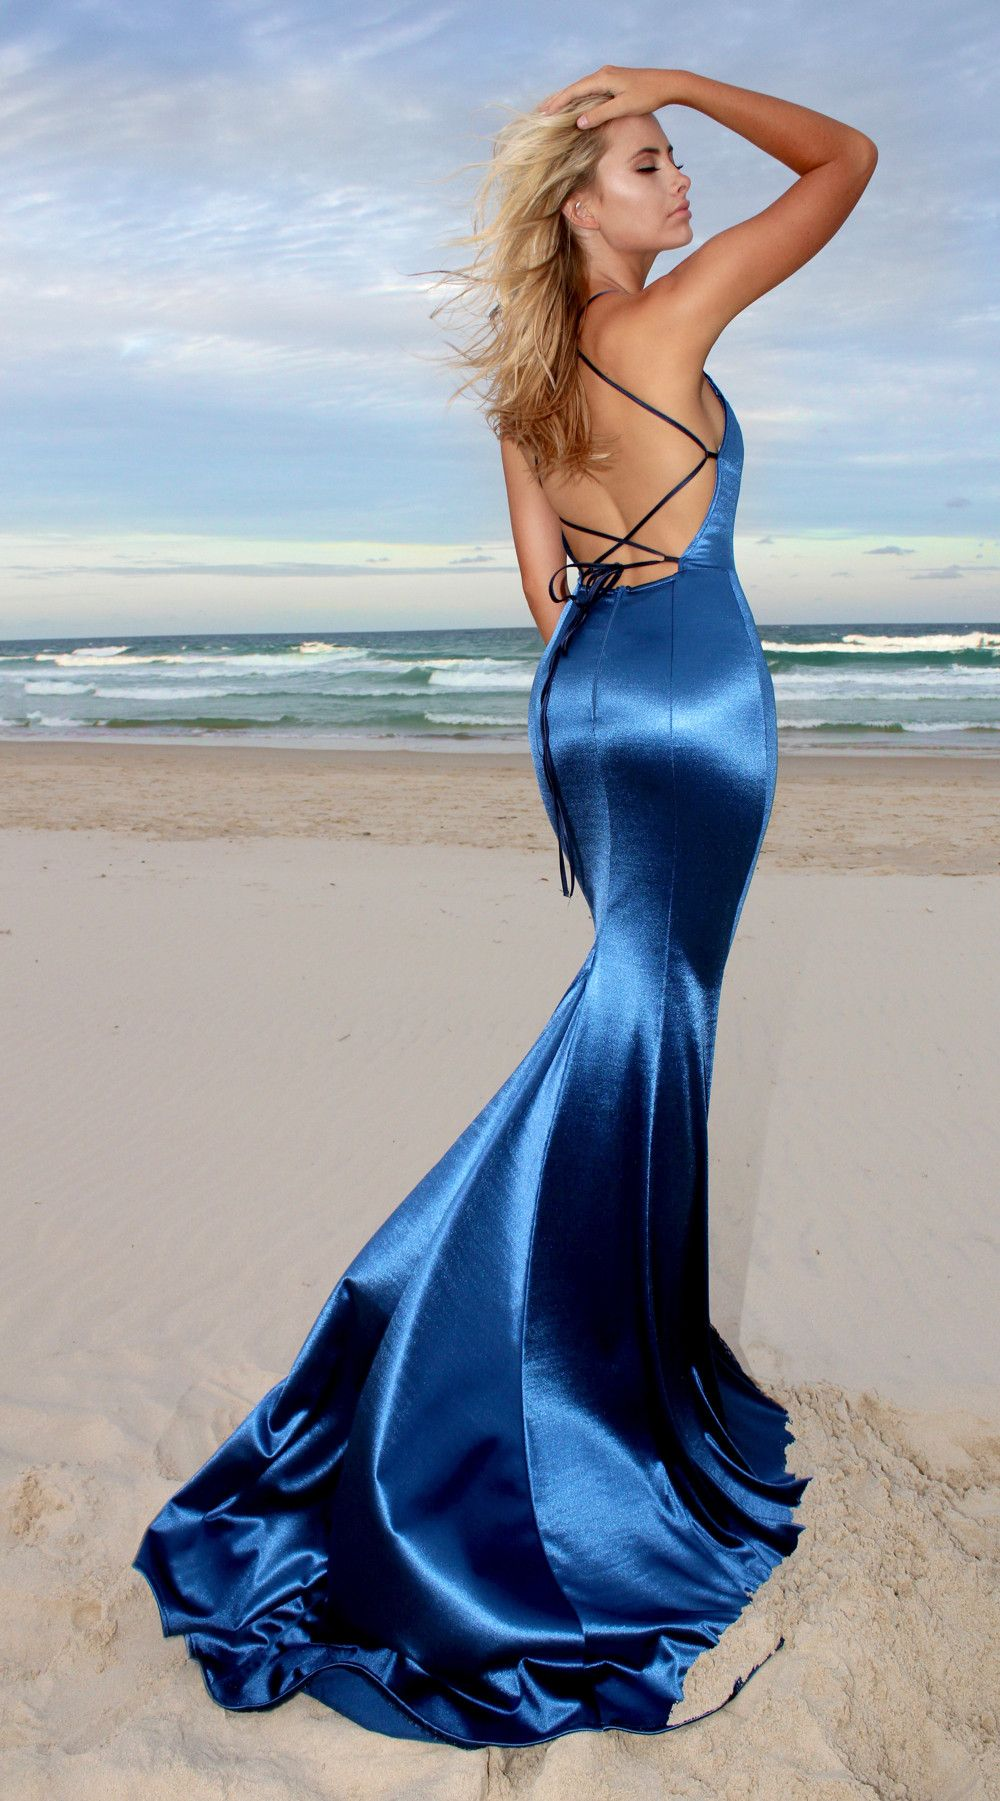 Navy Desire backless prom/ formal dress by STUDIO MINC